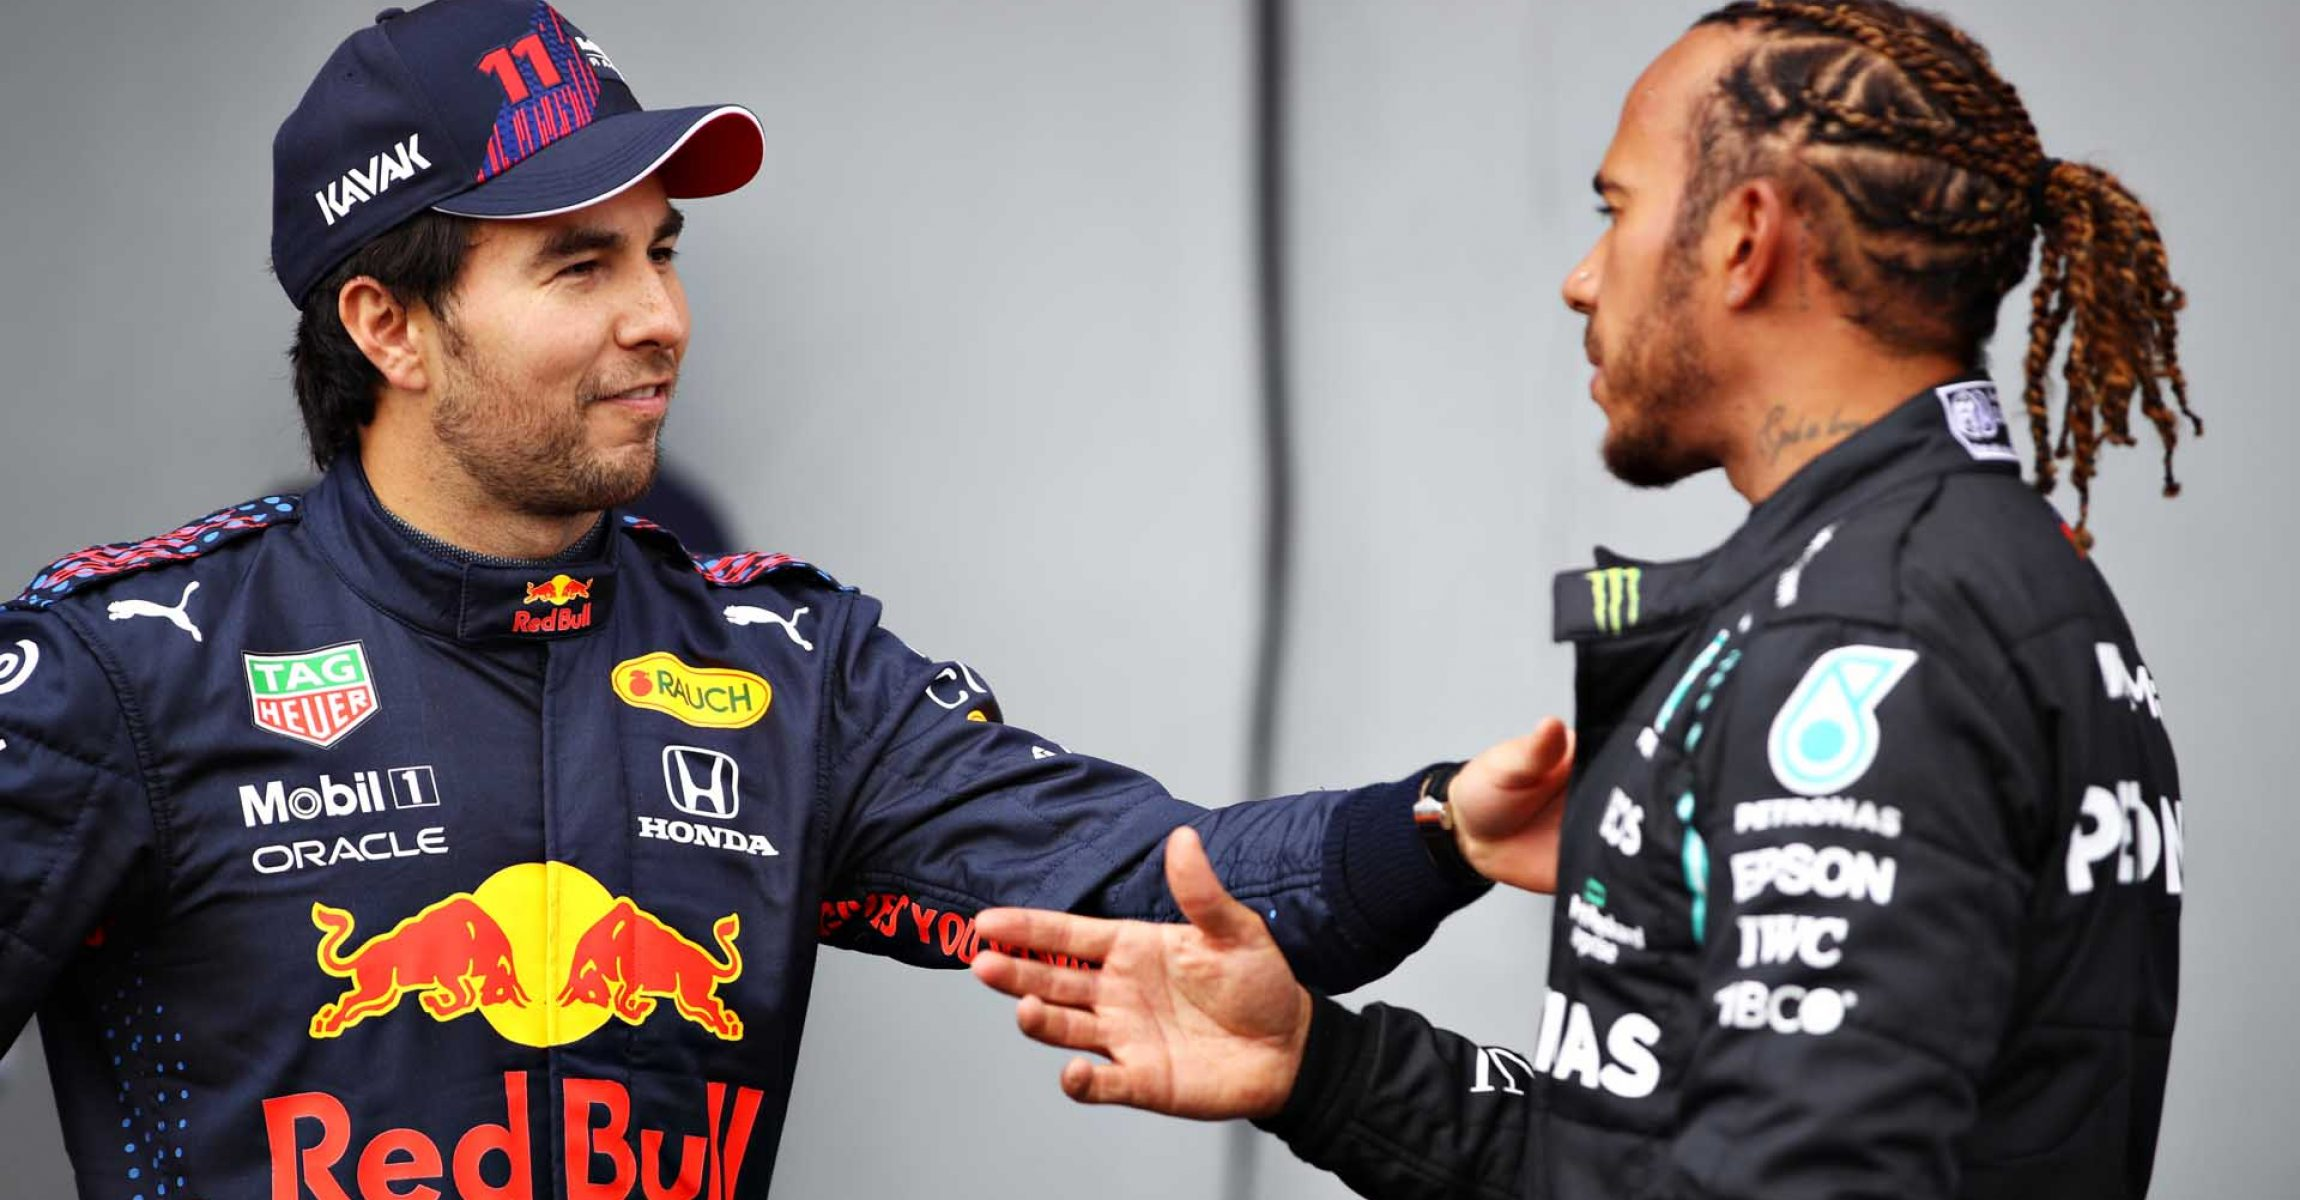 IMOLA, ITALY - APRIL 17: Second place qualifier Sergio Perez of Mexico and Red Bull Racing and pole position qualifier Lewis Hamilton of Great Britain and Mercedes GP talk in parc ferme during qualifying ahead of the F1 Grand Prix of Emilia Romagna at Autodromo Enzo e Dino Ferrari on April 17, 2021 in Imola, Italy. (Photo by Mark Thompson/Getty Images)